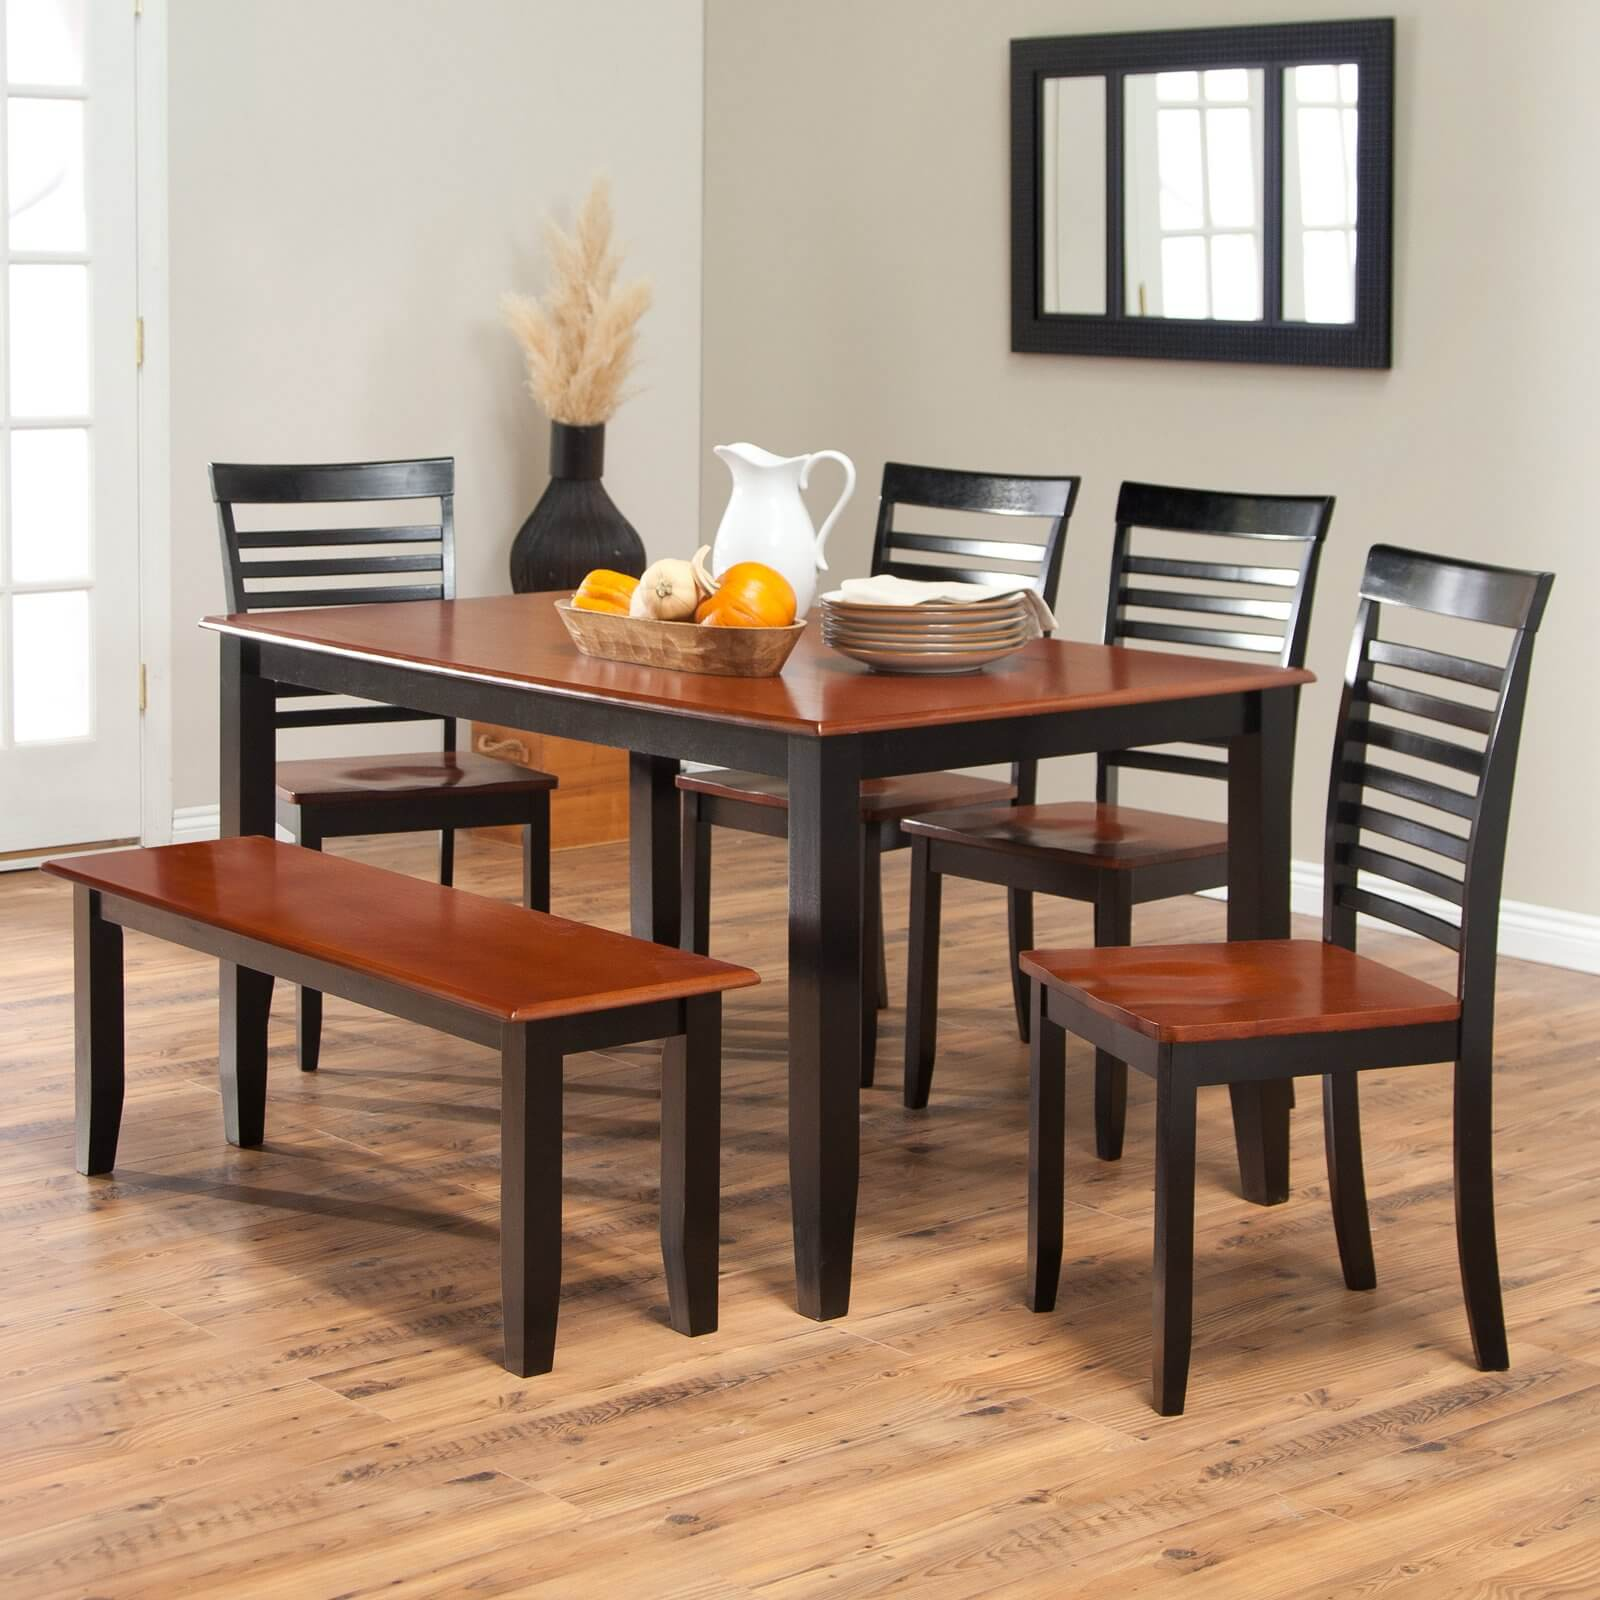 Simple Two Toned Dining Set With Bench. The Seats And Table Top Are Cherry